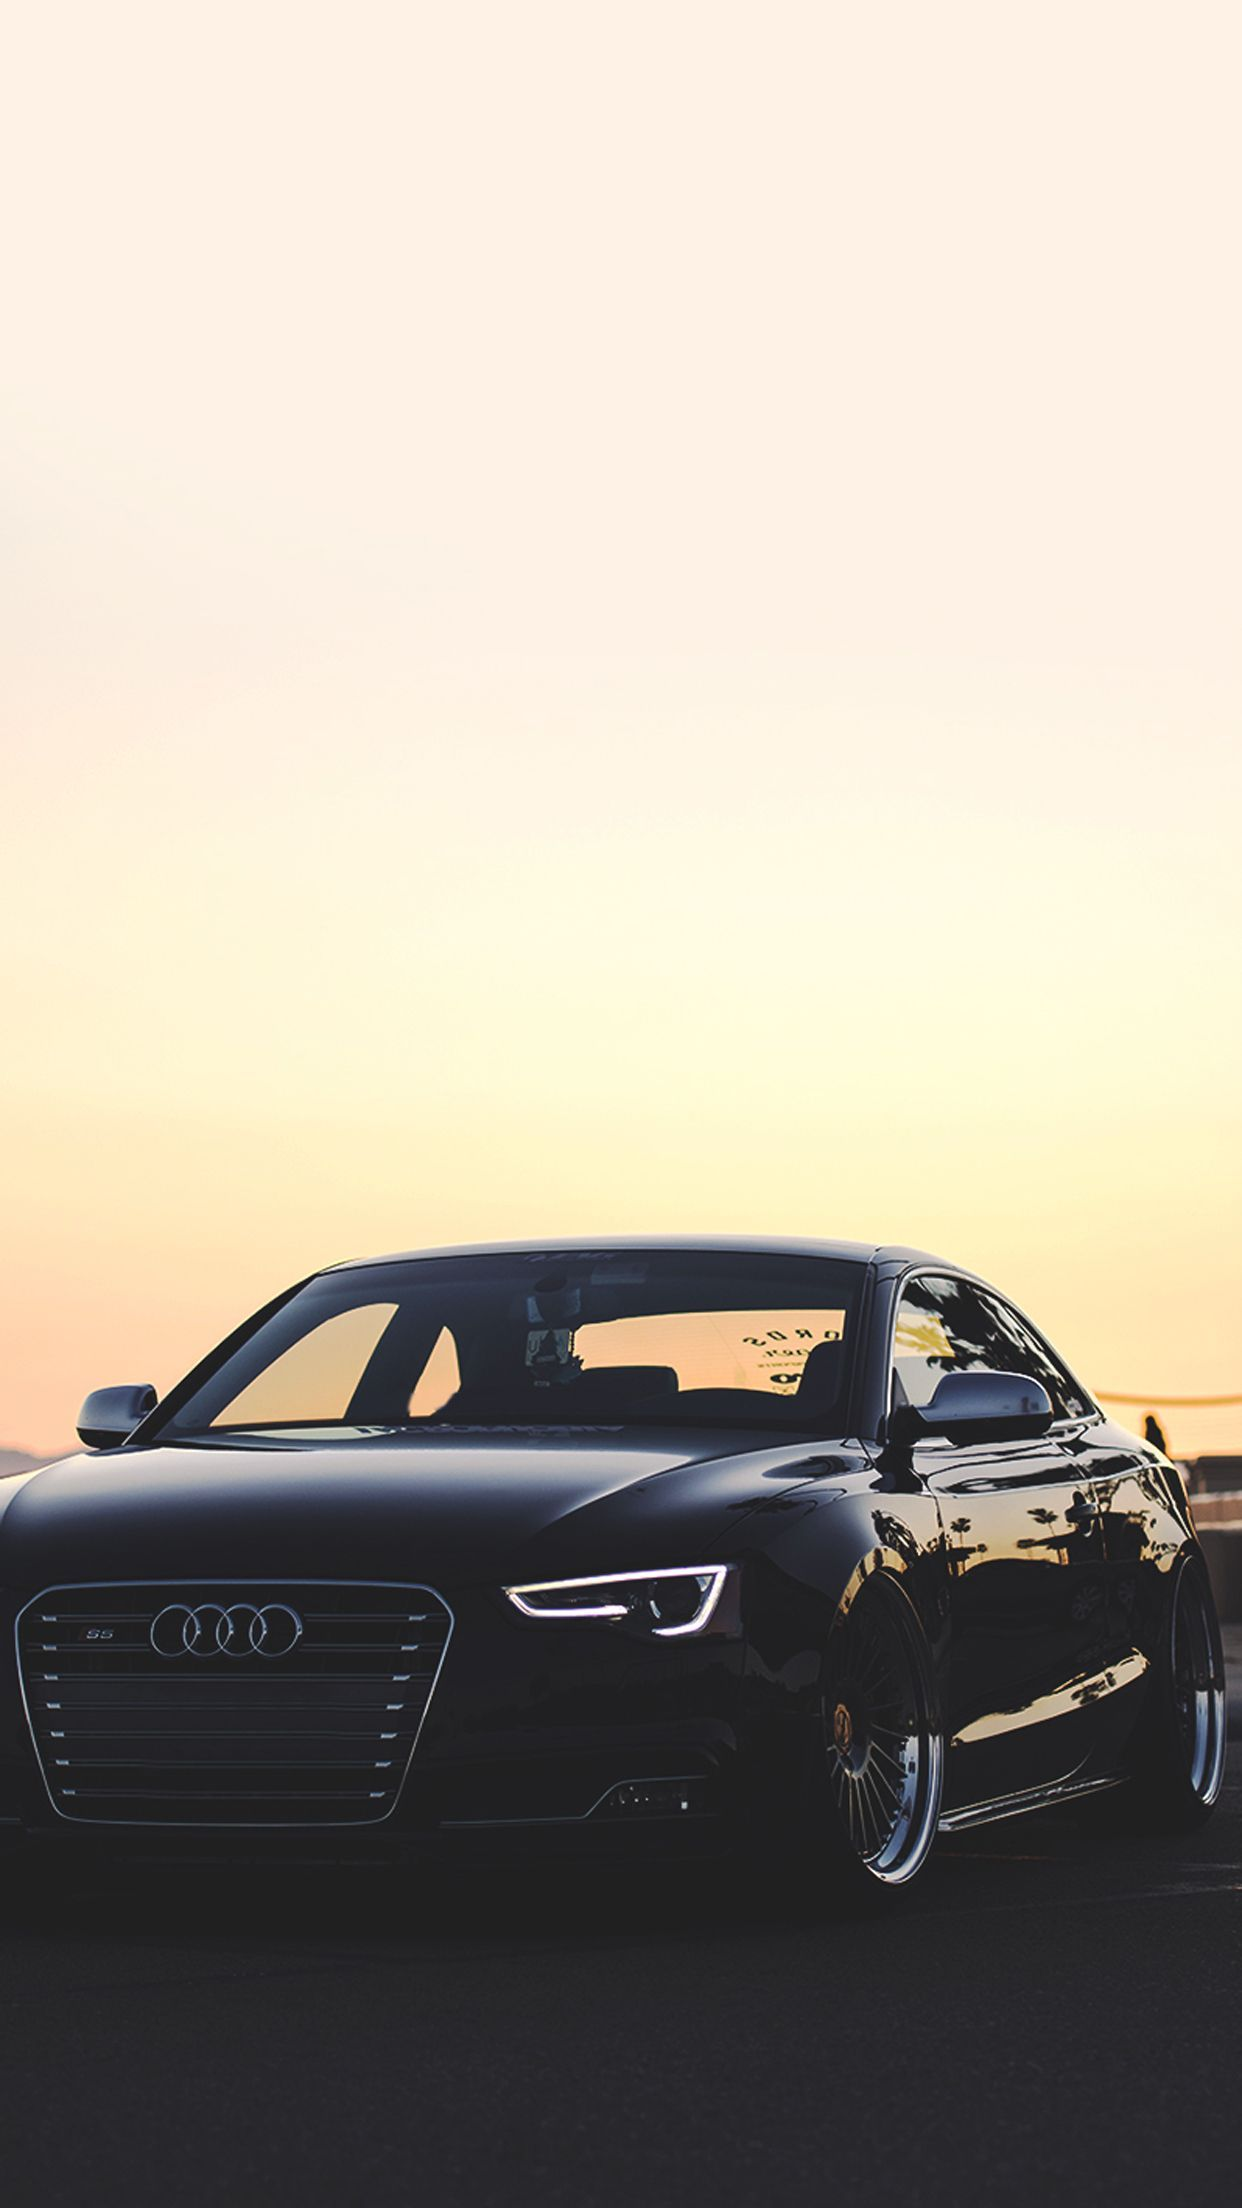 Best 4 Door Sports Cars In The World Best Pictures Cars Audi R8 Black Car Wallpapers Audi Cars